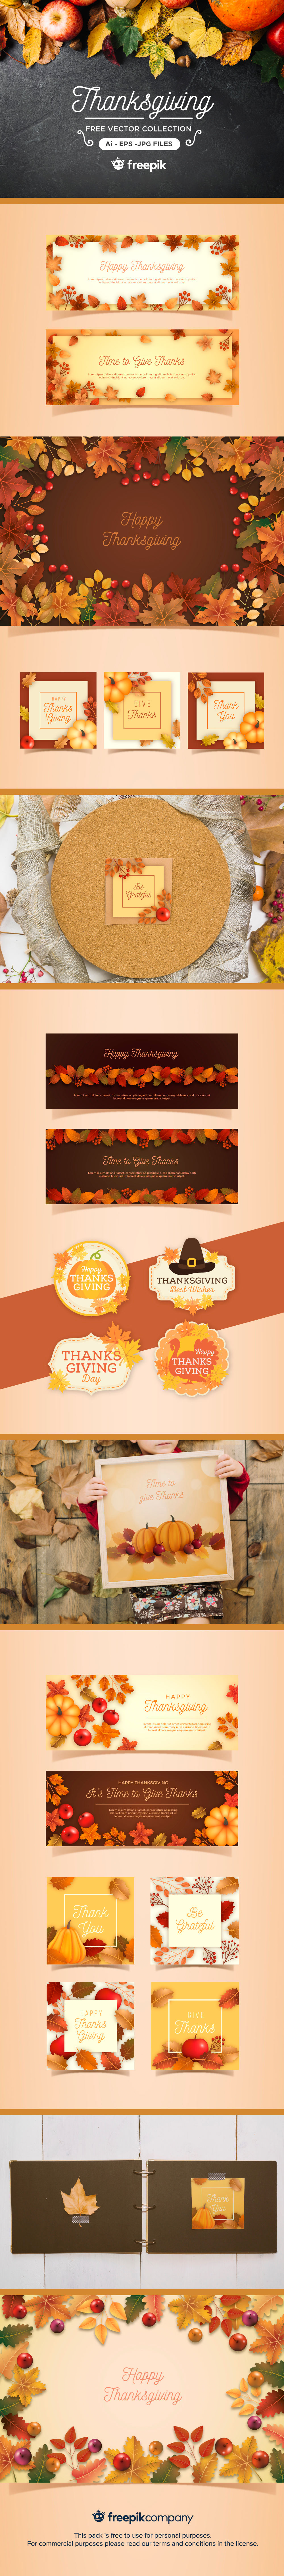 Free Thanksgiving Vector Collection